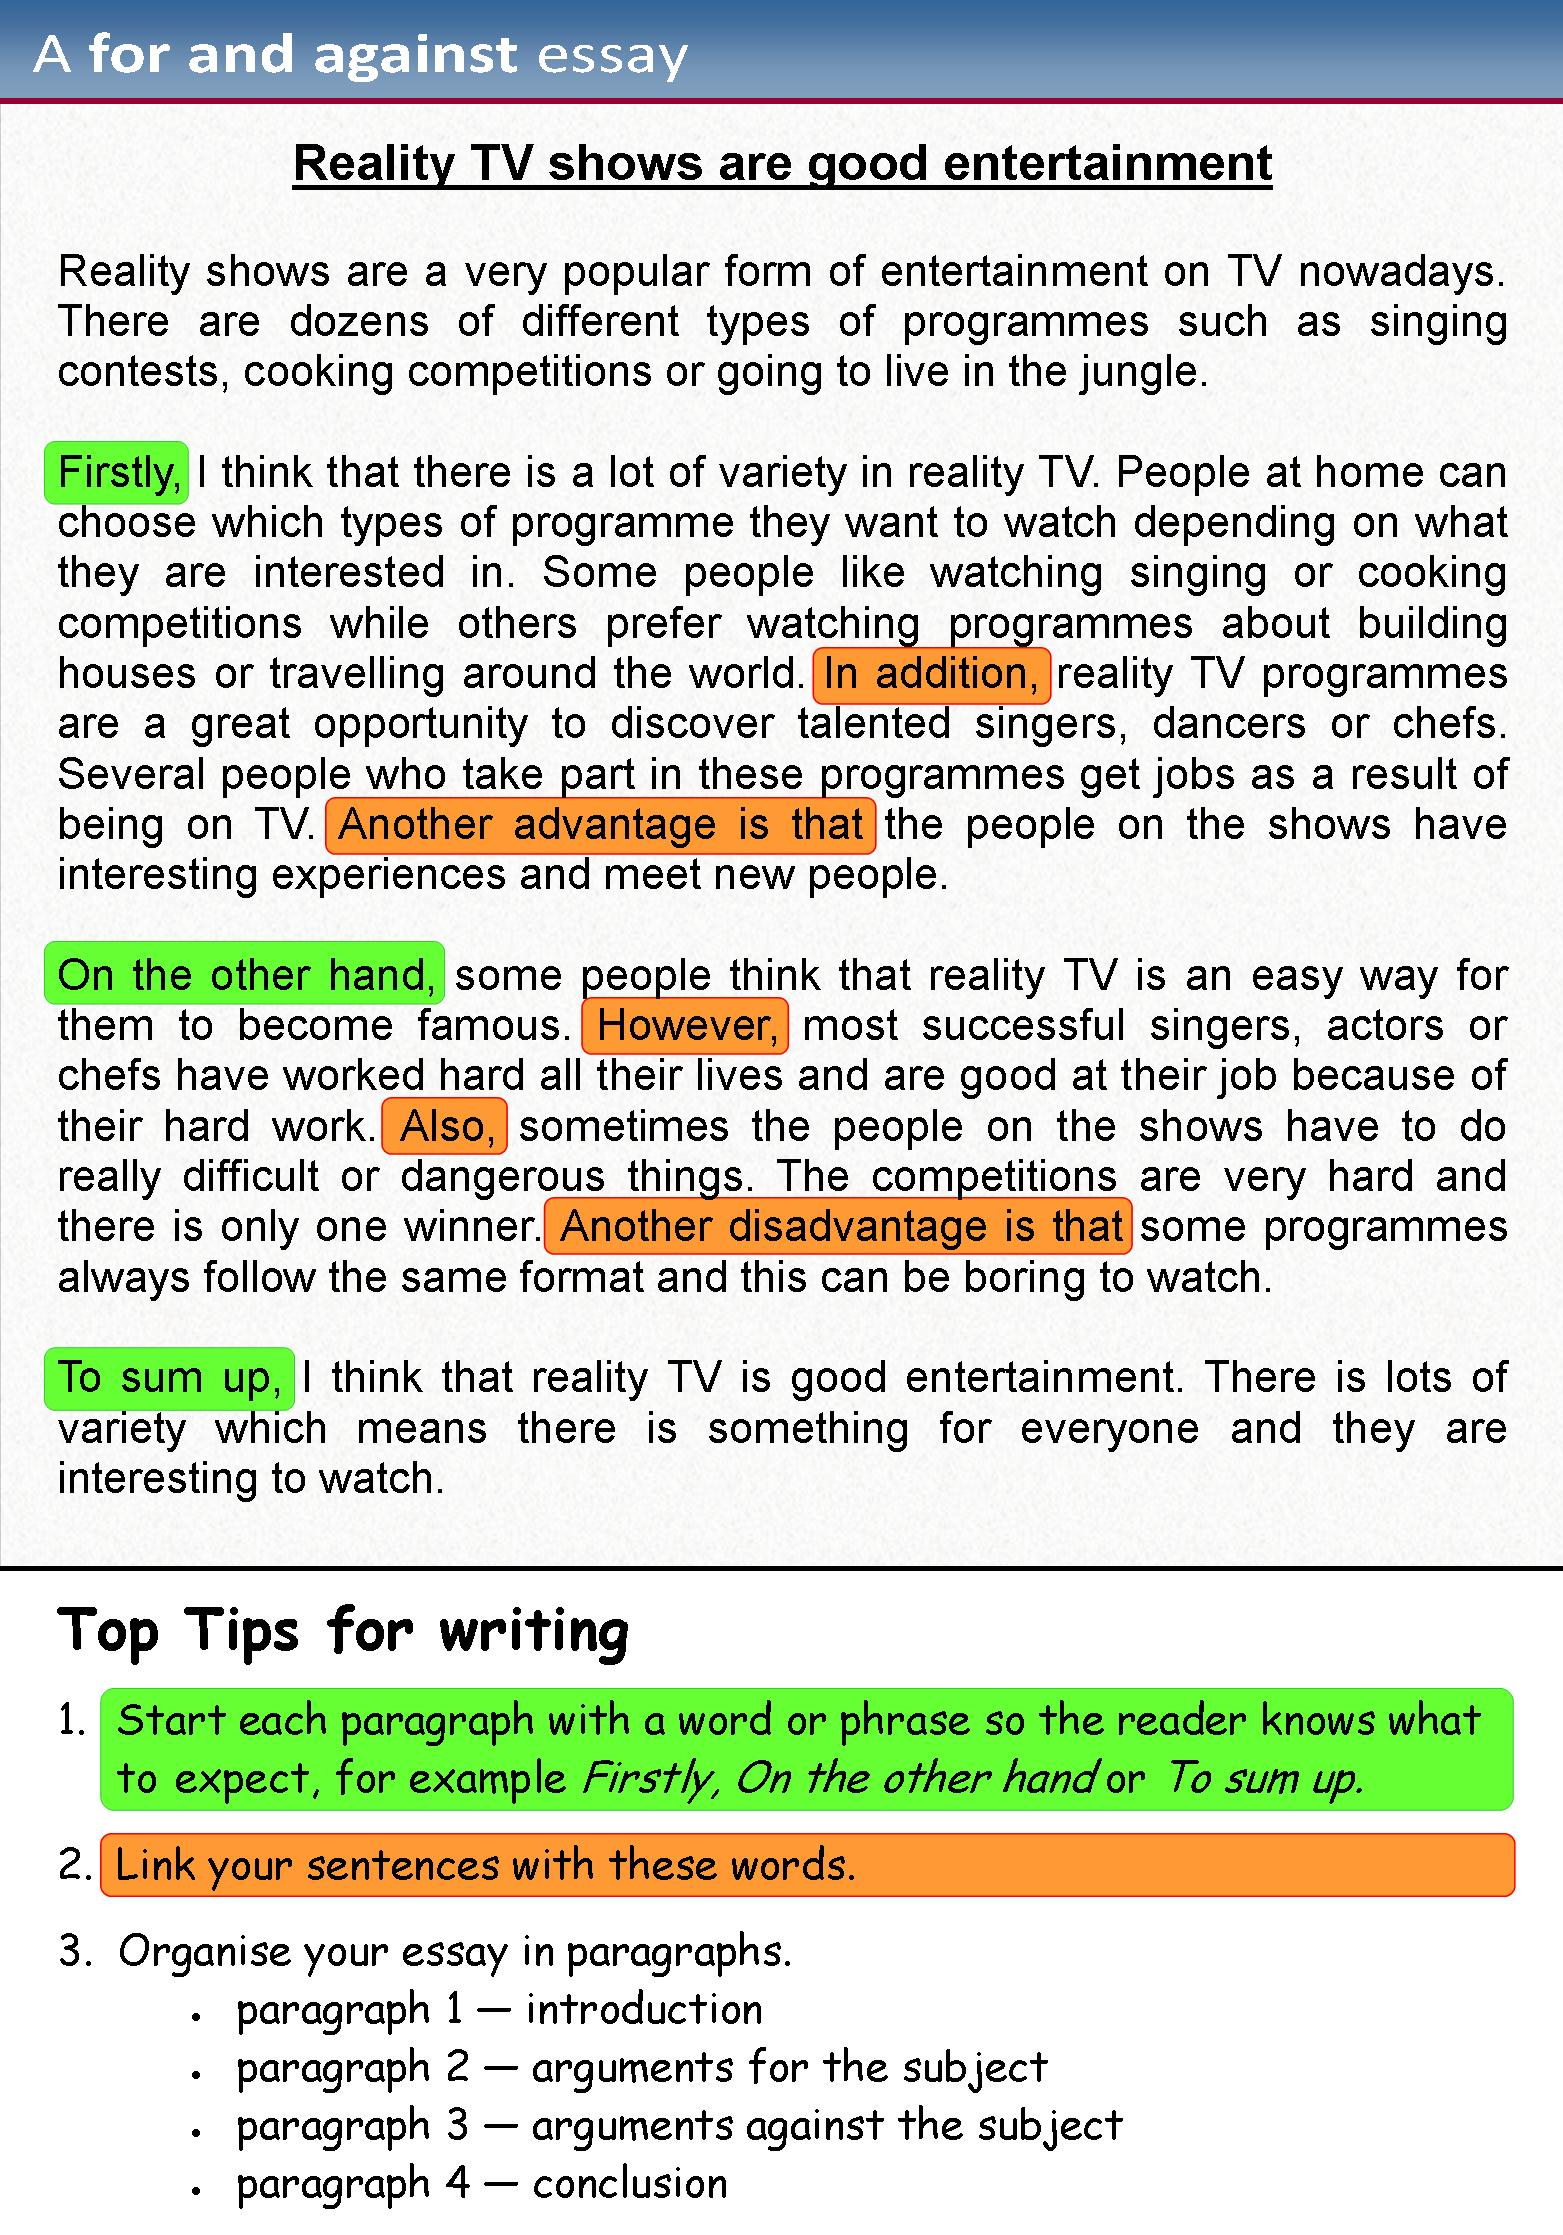 011 For Against Essay 1 Example Structure Incredible Types Pdf Organizational Full